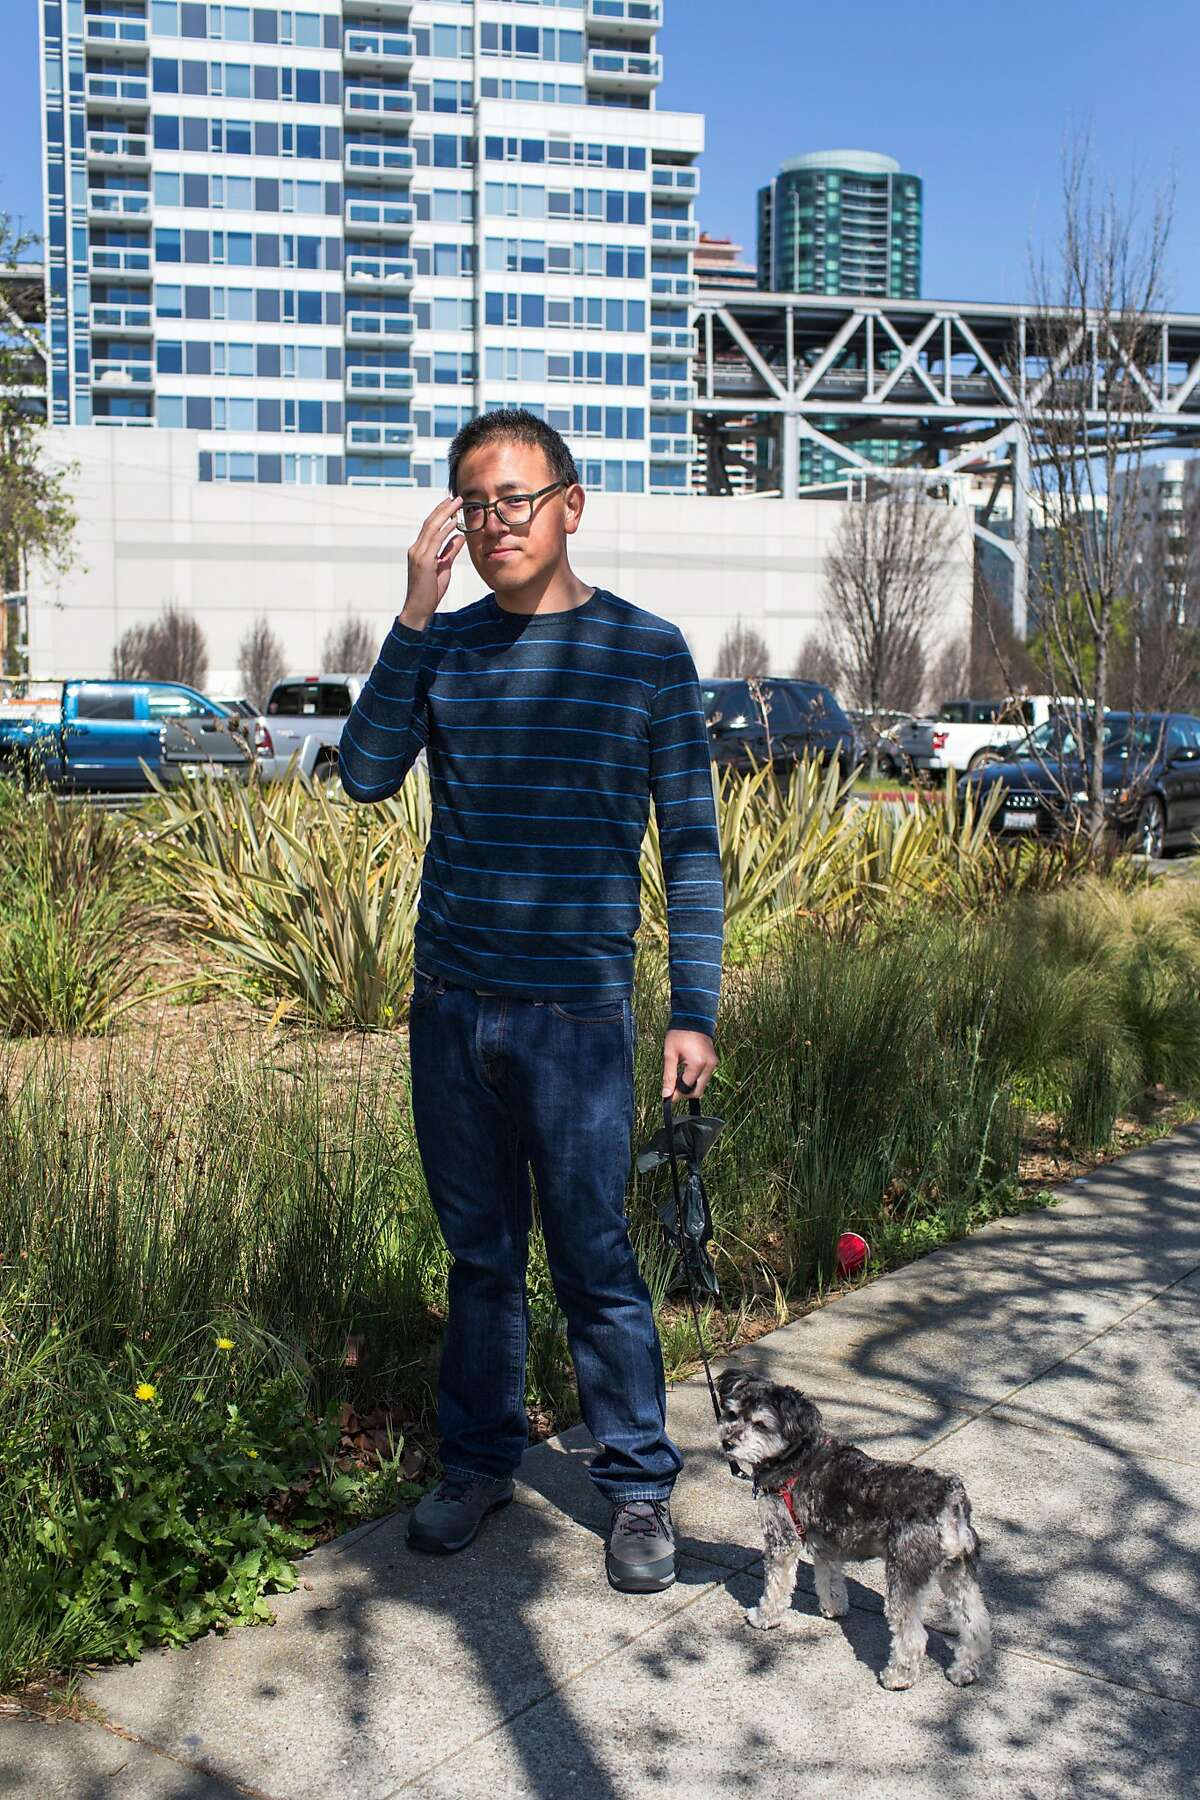 Wallace Lee, one of the central spokesman for the opposition to the Embarcadero Navigation Center, poses for a portrait in the site planed for the Navigation Center. On Wednesday, April 10, 2019. San Francisco, Calif.